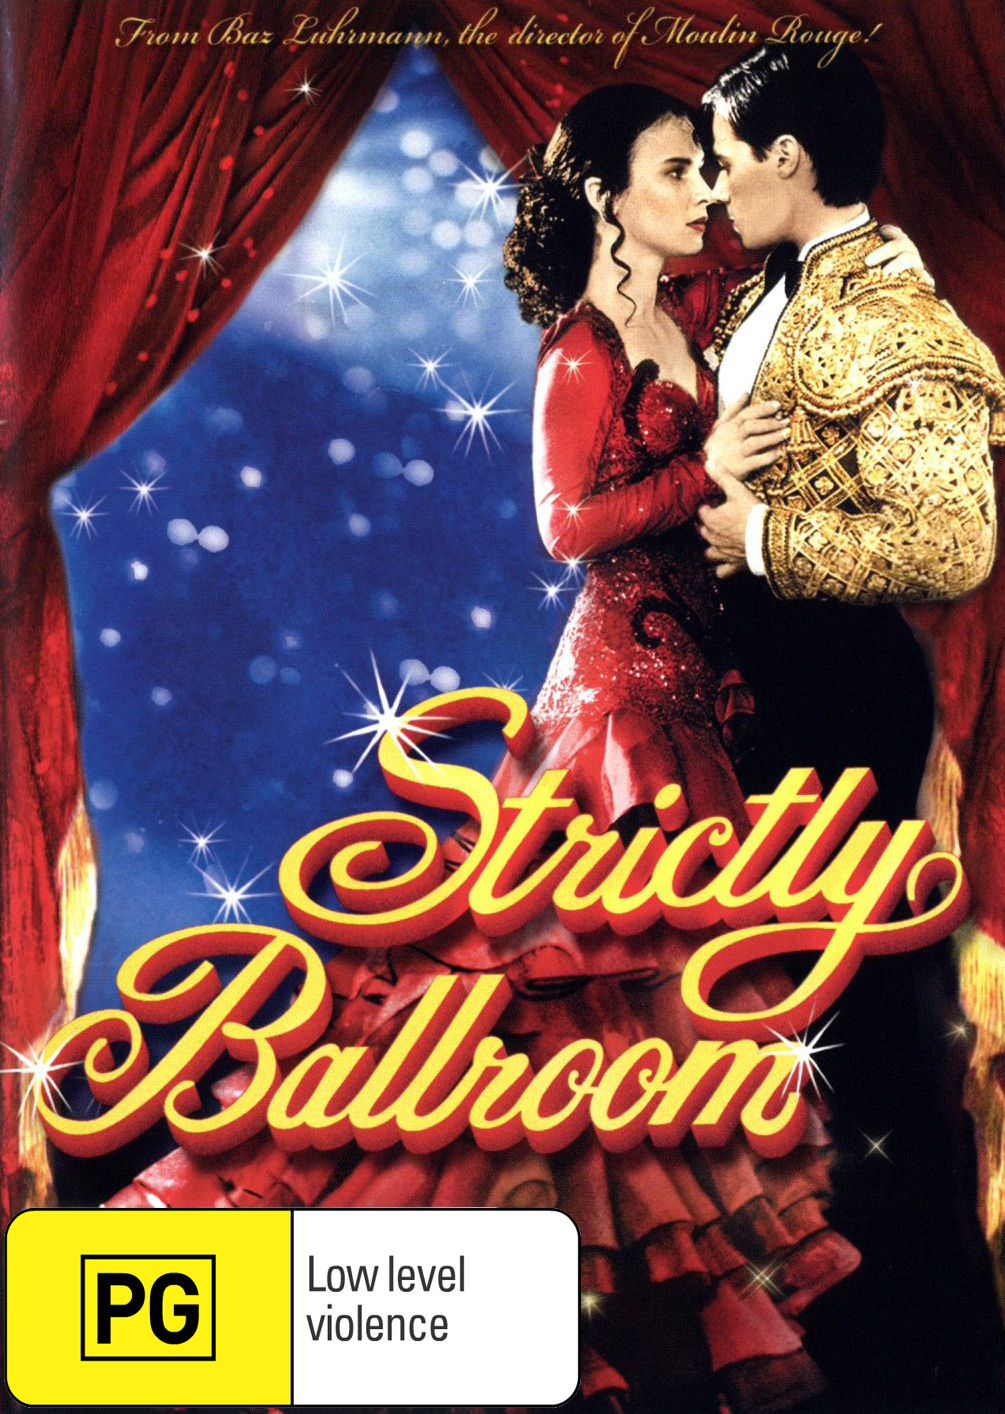 Strictly Ballroom (New Packaging) on DVD image